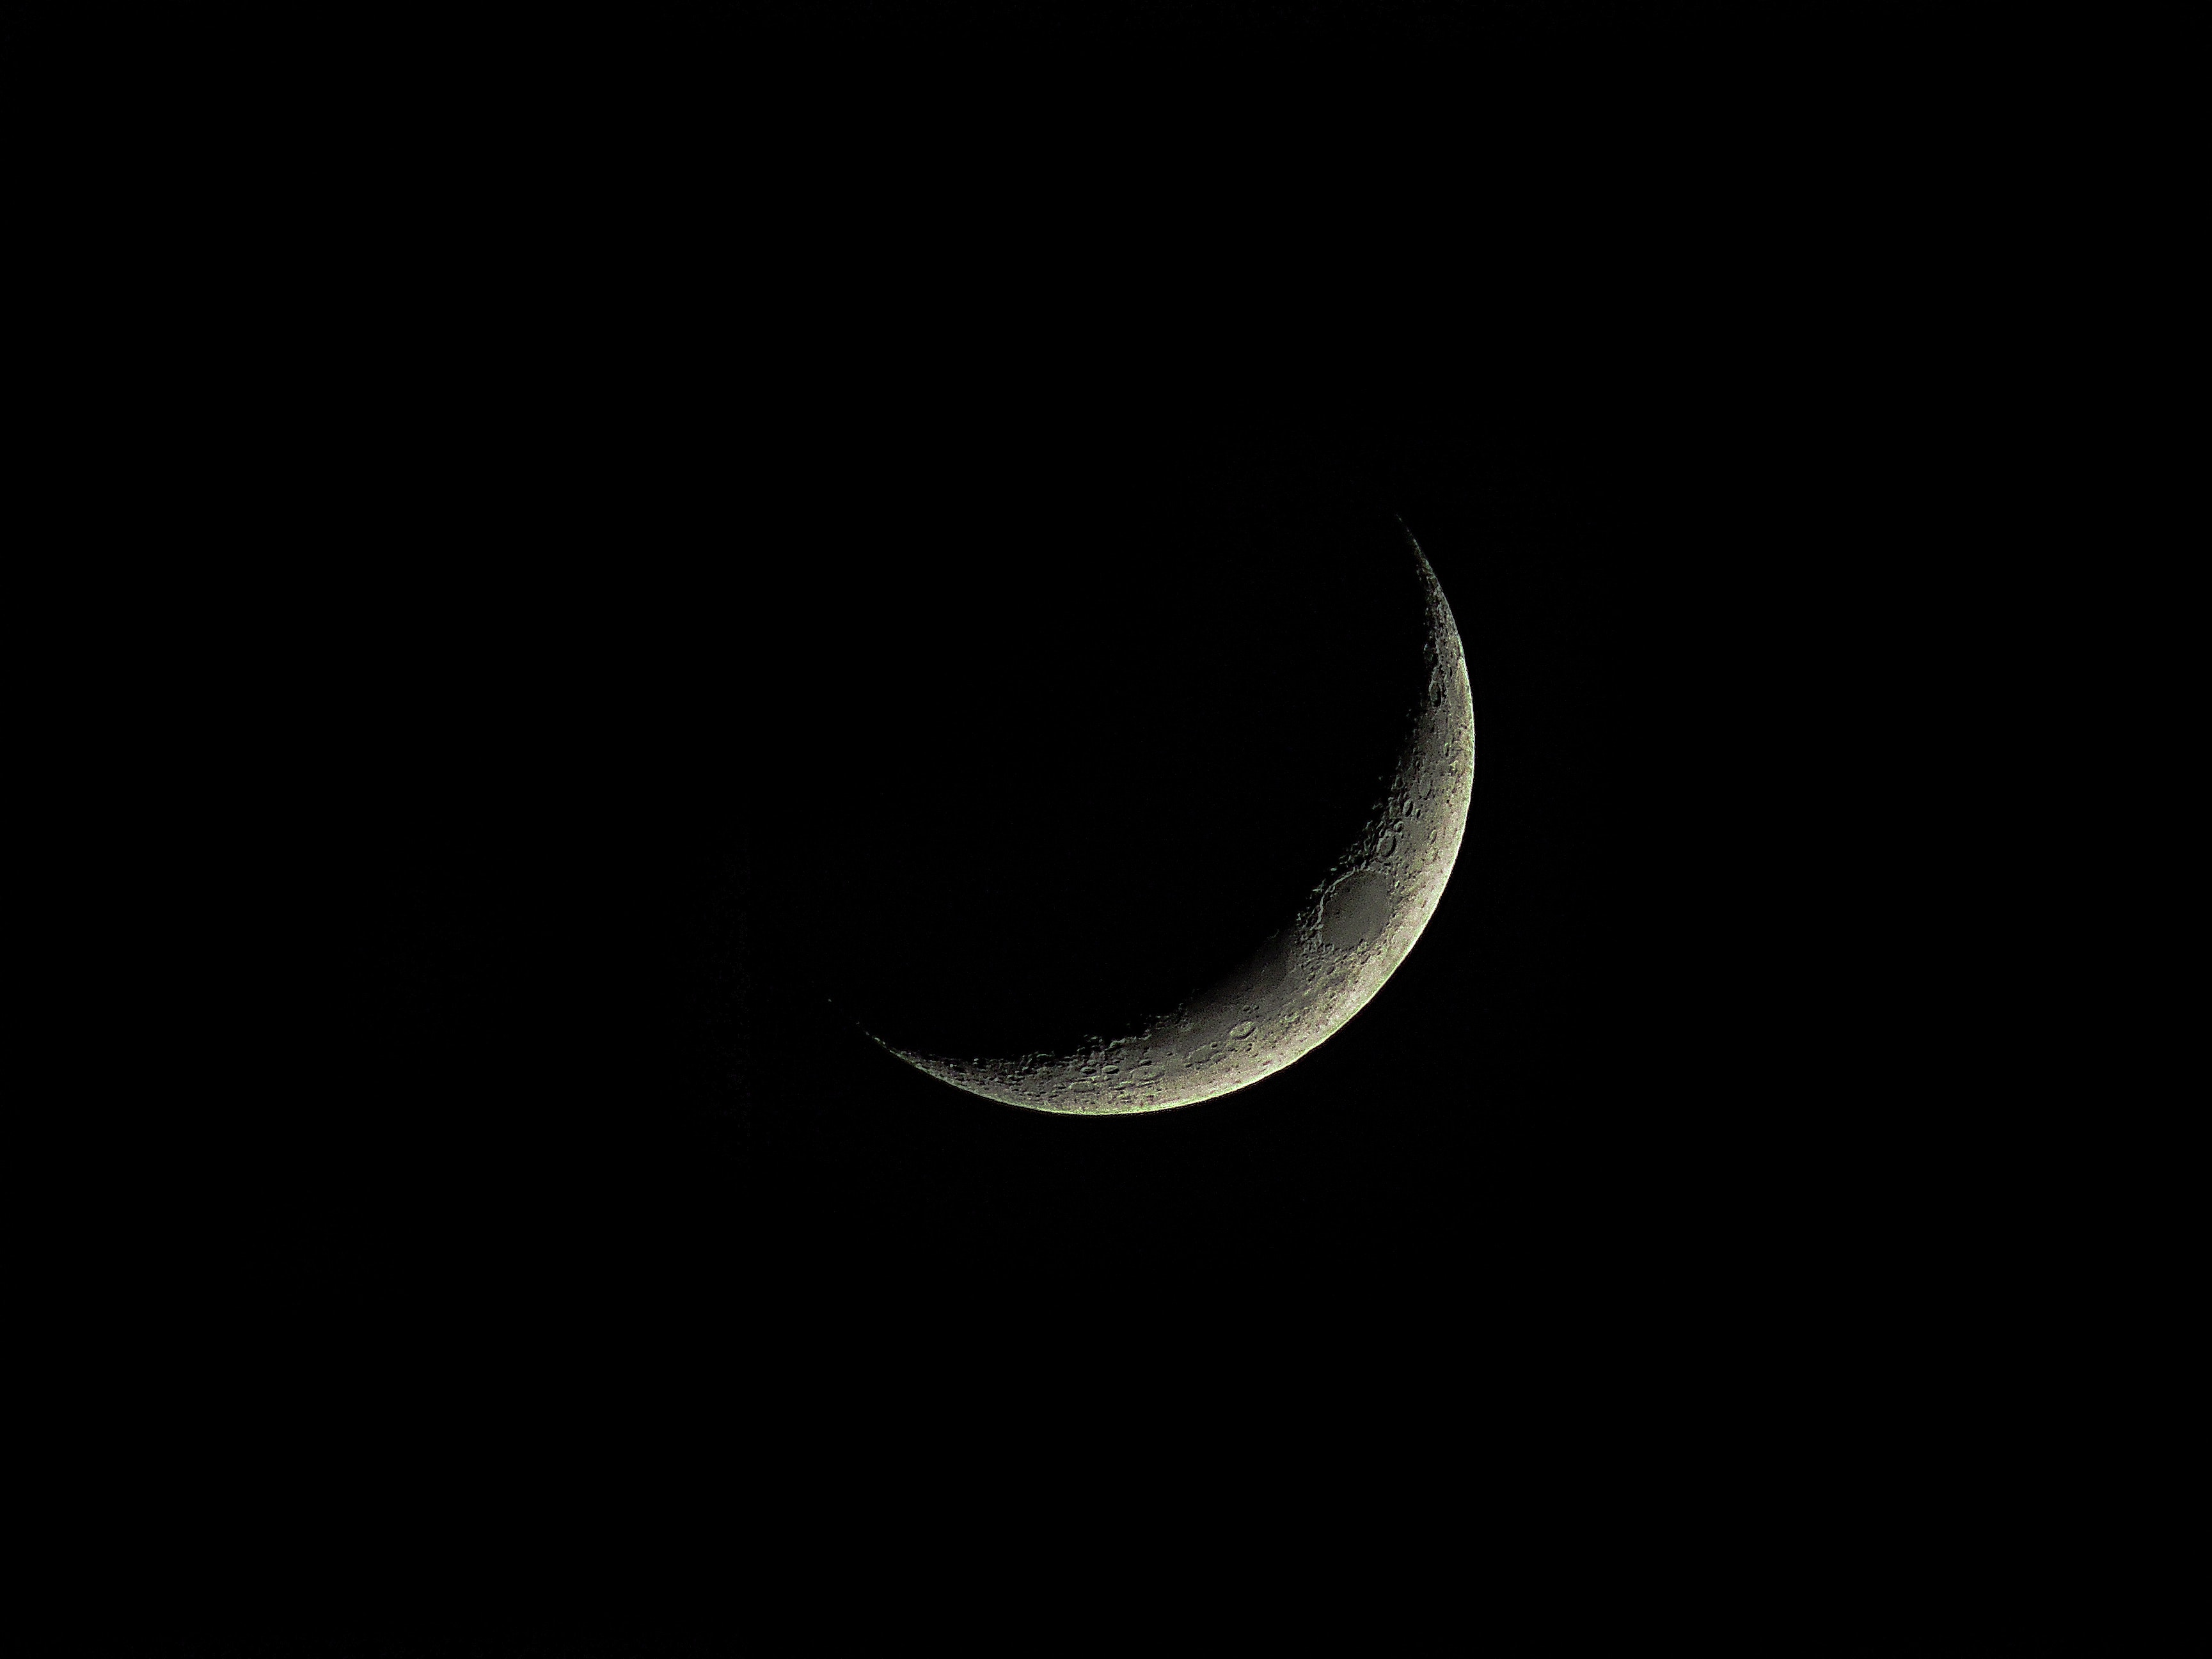 crescent moon symbol on iphone free photo crescent moon moon space free 16845